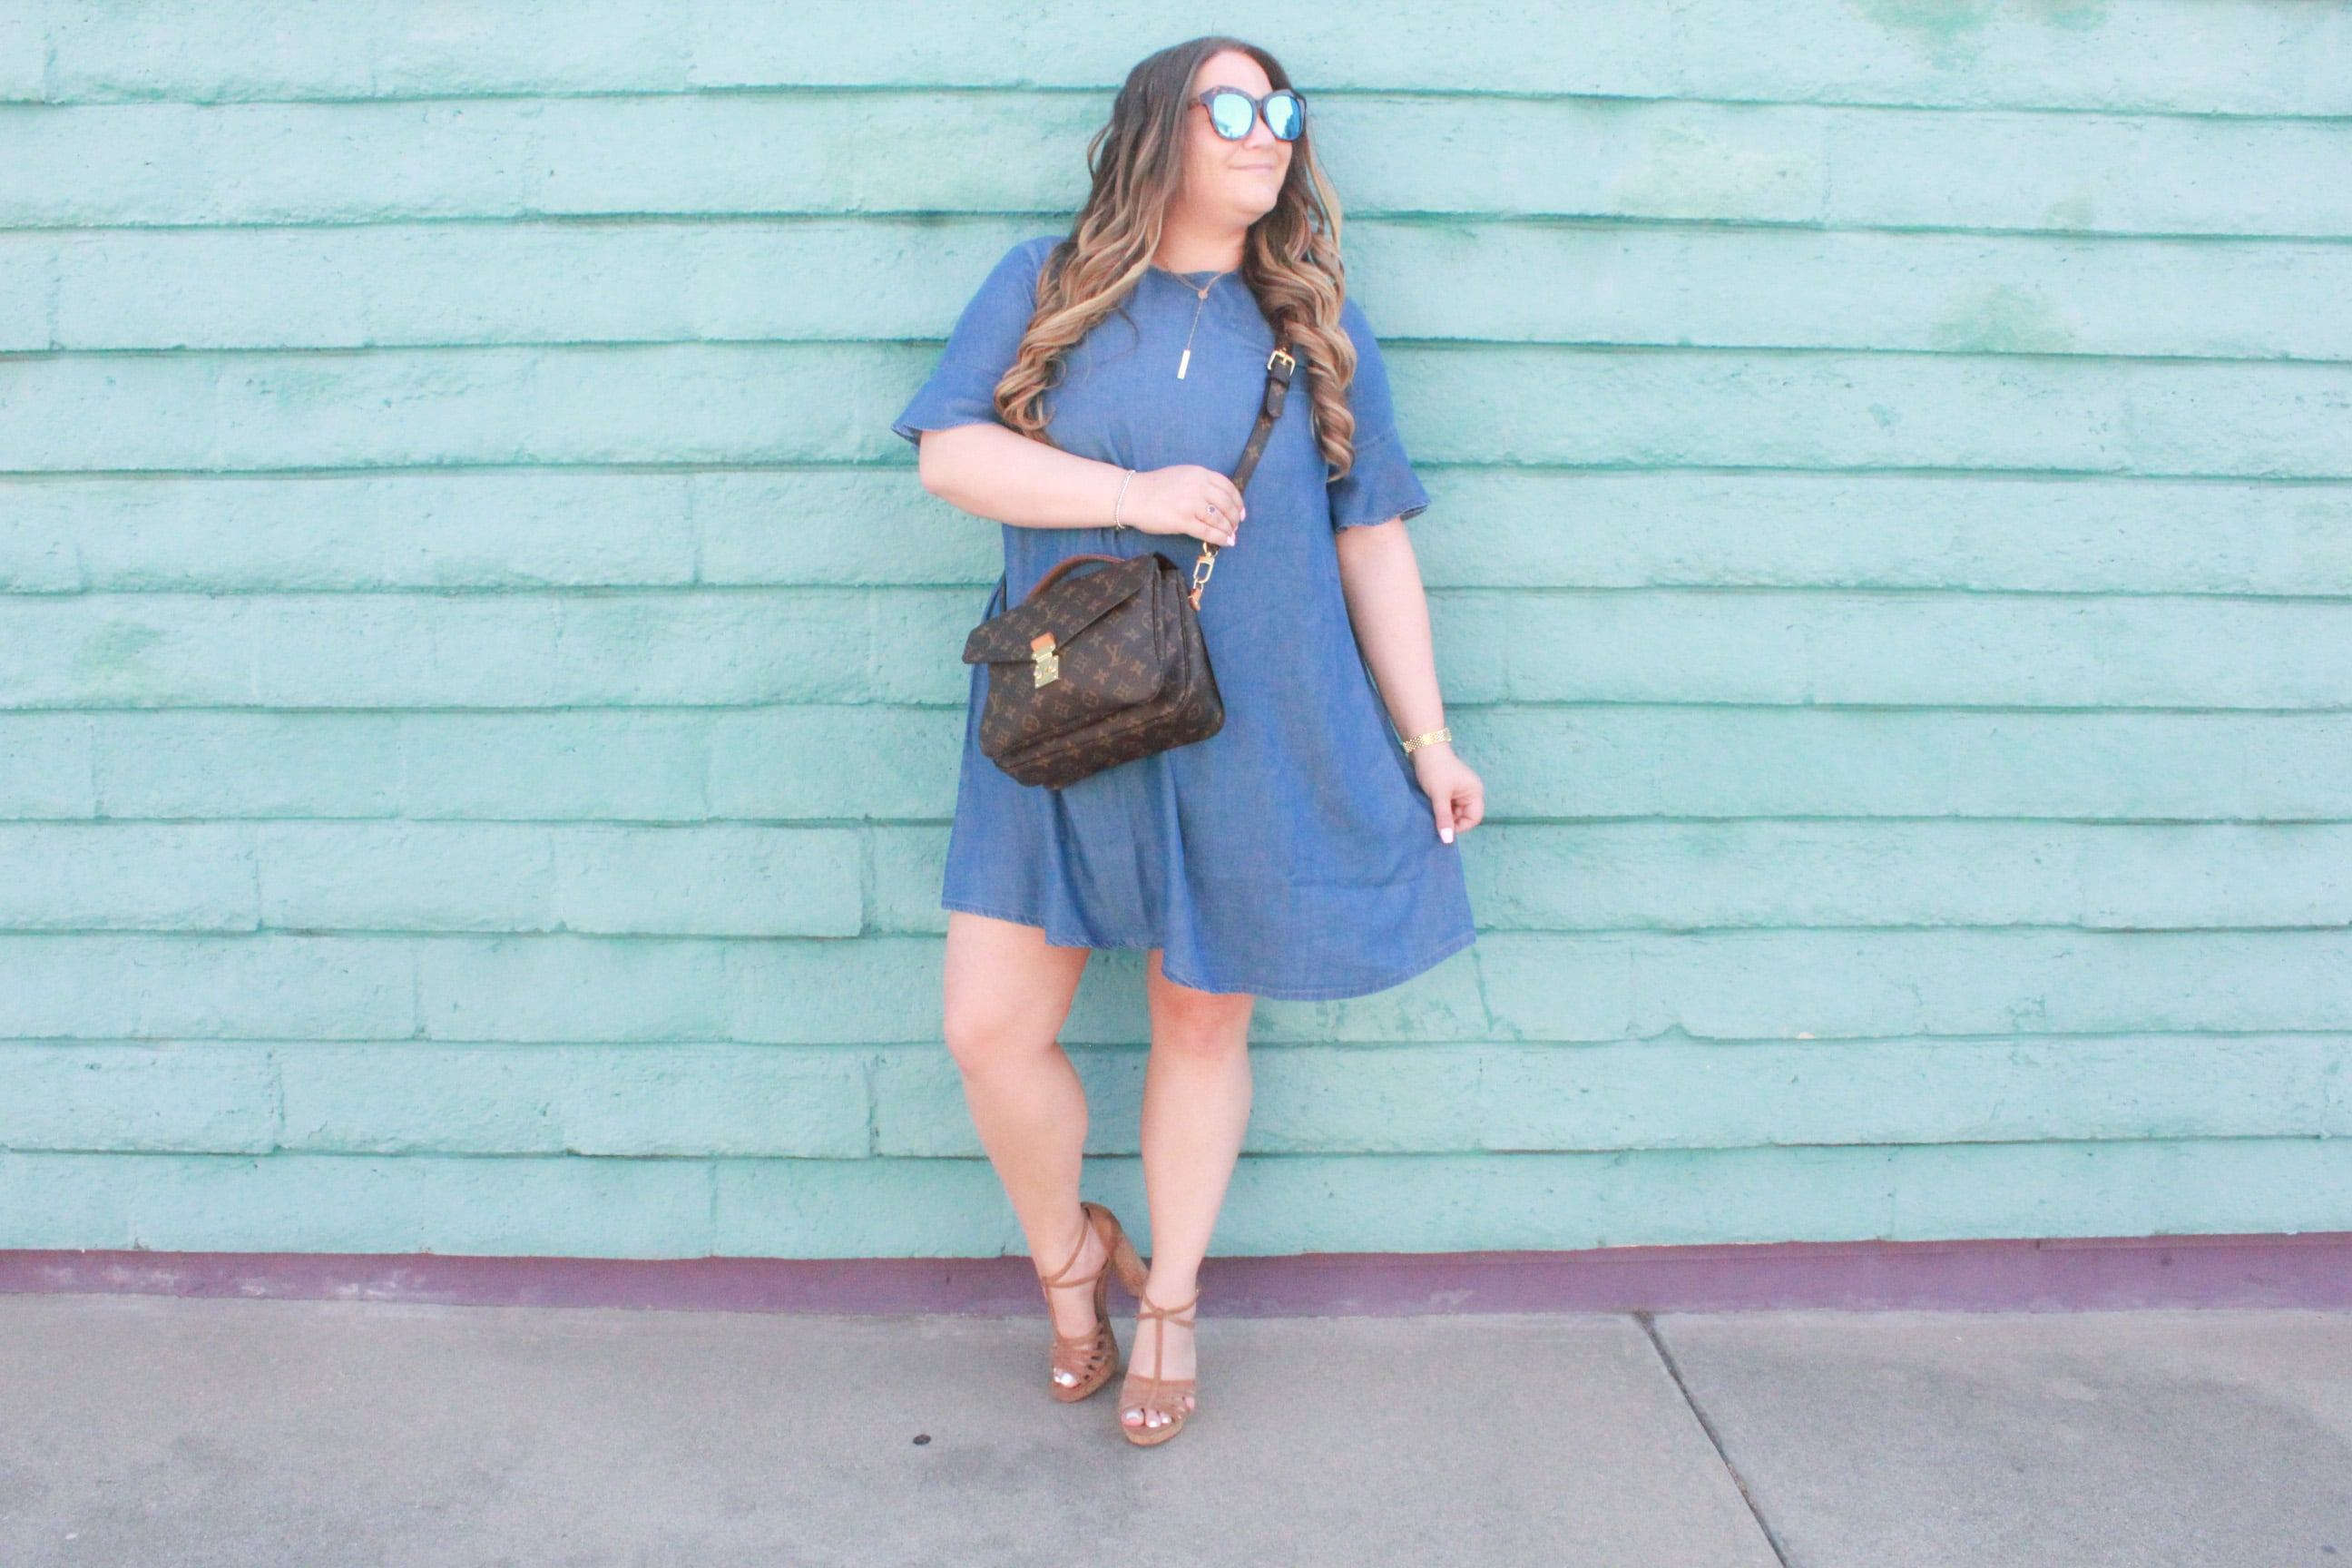 missyonmadison,missyonmadison blog, missyonmadison blogger, missyonmadison instagram, la blogger, fashion blog, fashion blogger, style blog, style blogger, what i wore, currently wearing, bloglovin, chambray dress, chambray style, how to wear chambray, simply be usa, simply be, simply be dress, louis vuitton, louis vuitton pouchette metis, louis vuitton crossbody bag, cork heels, charles david heels, style inspo, outfit inspo,